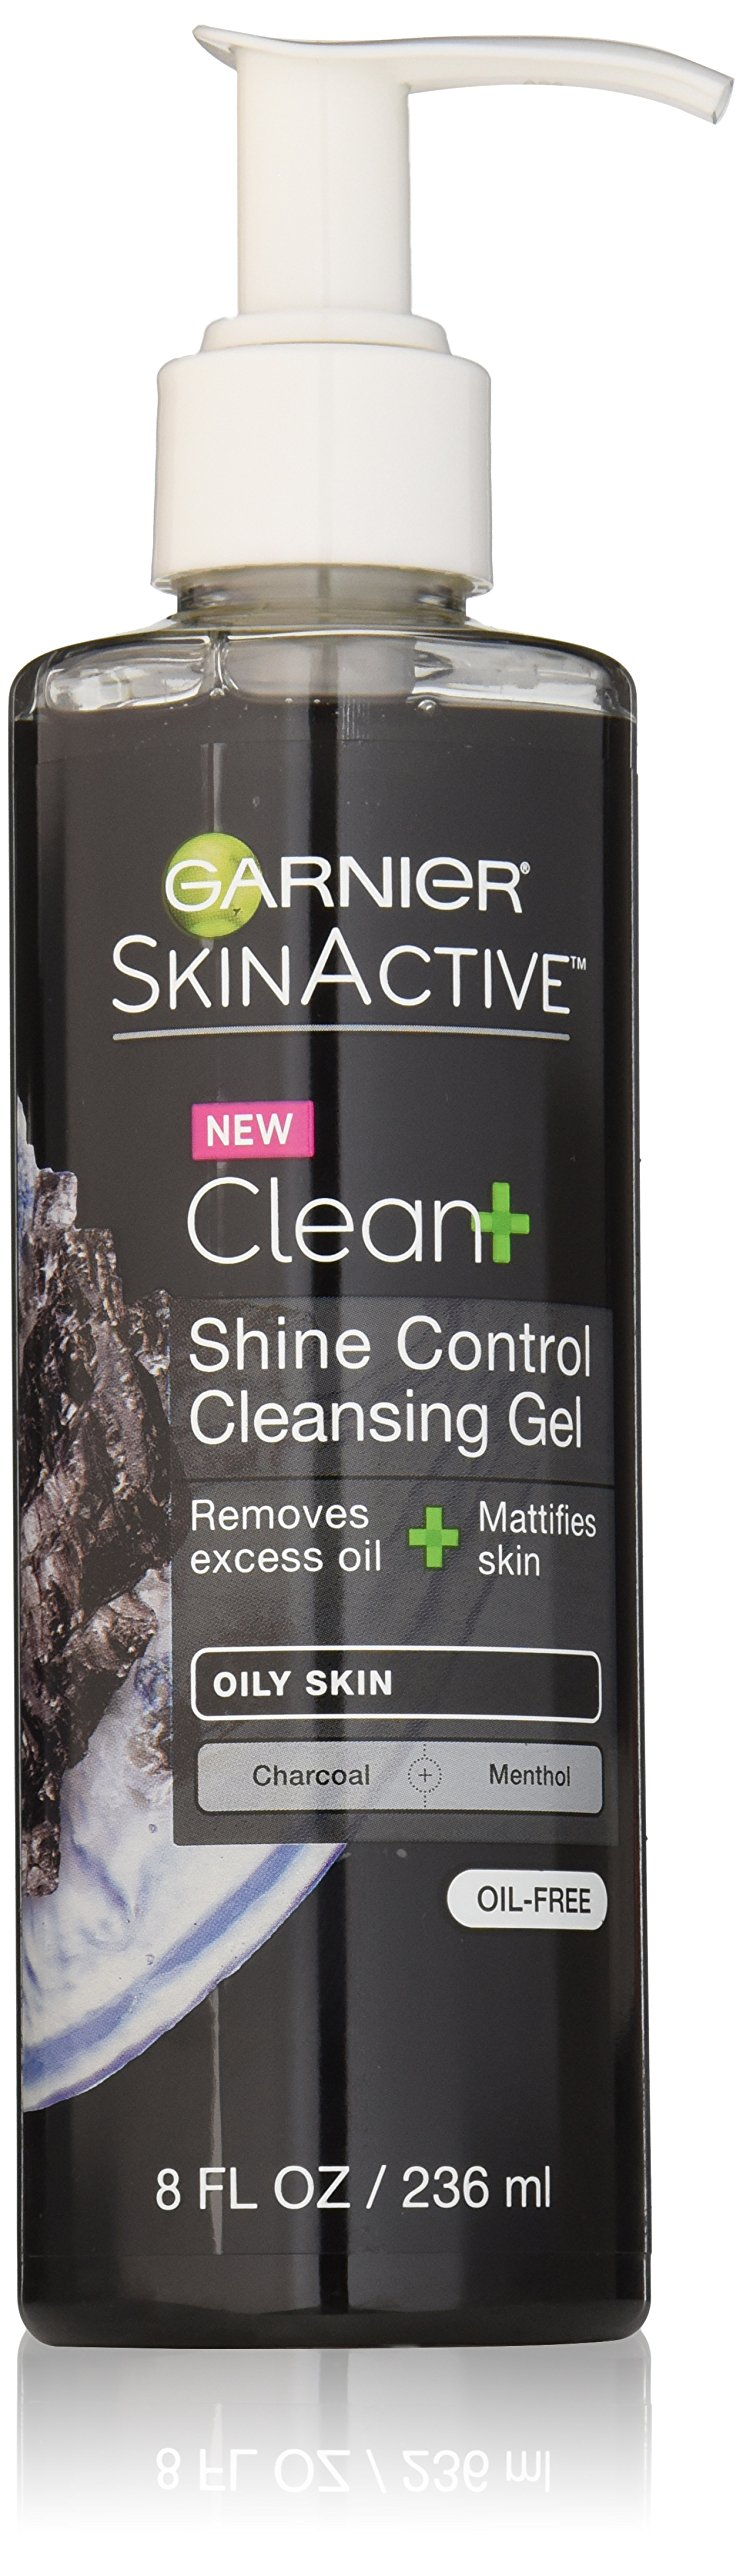 Garnier SkinActive Men's Shine Control Face Wash, For Oily Skin,  8 fl. oz.